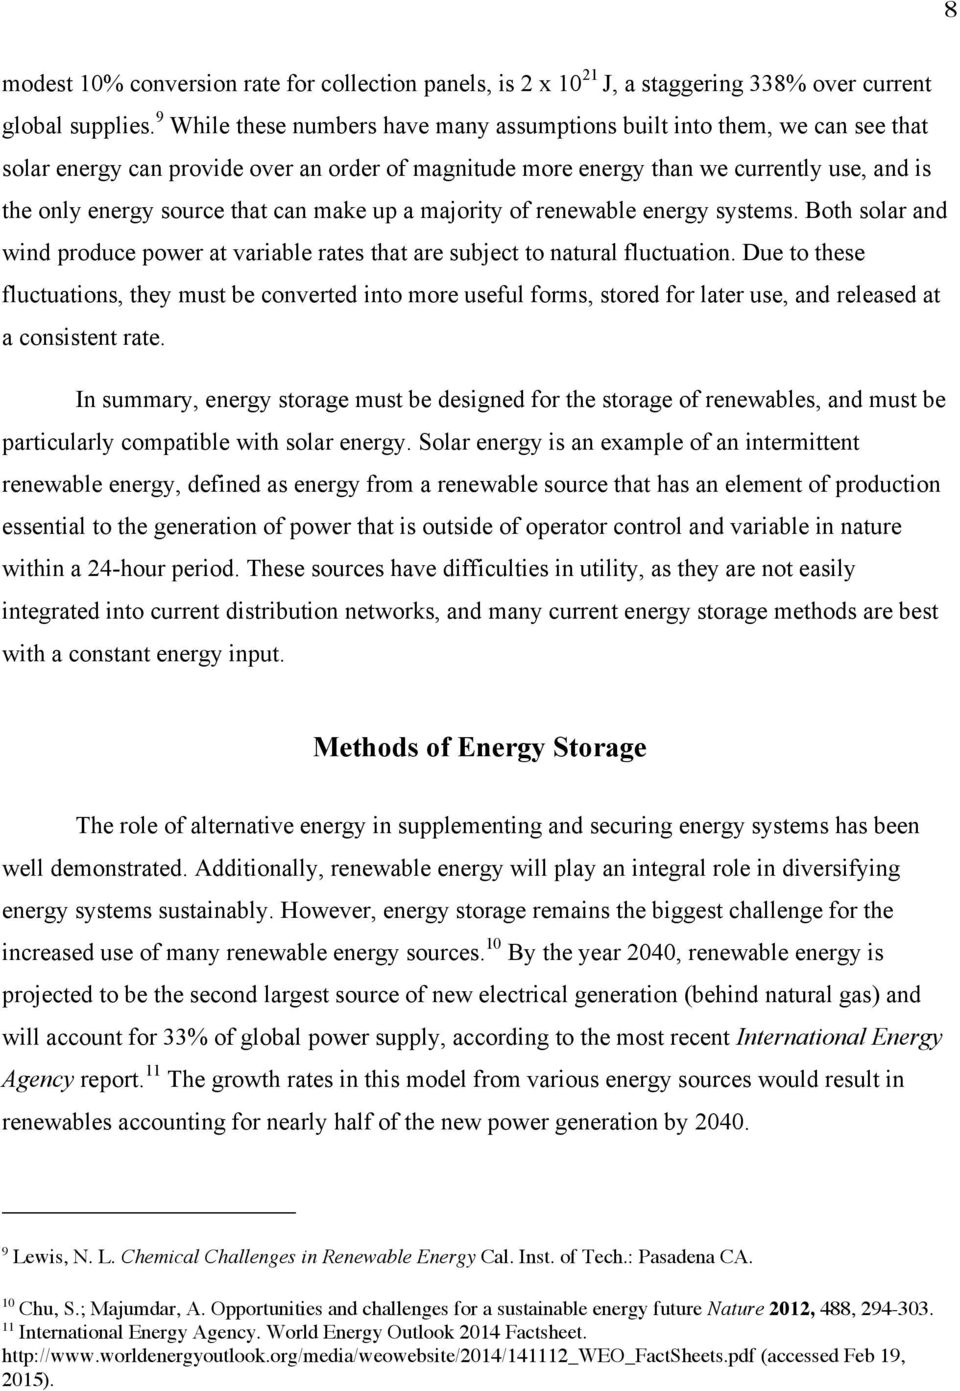 Storage of Intermittent Renewable Energy: A comparison of